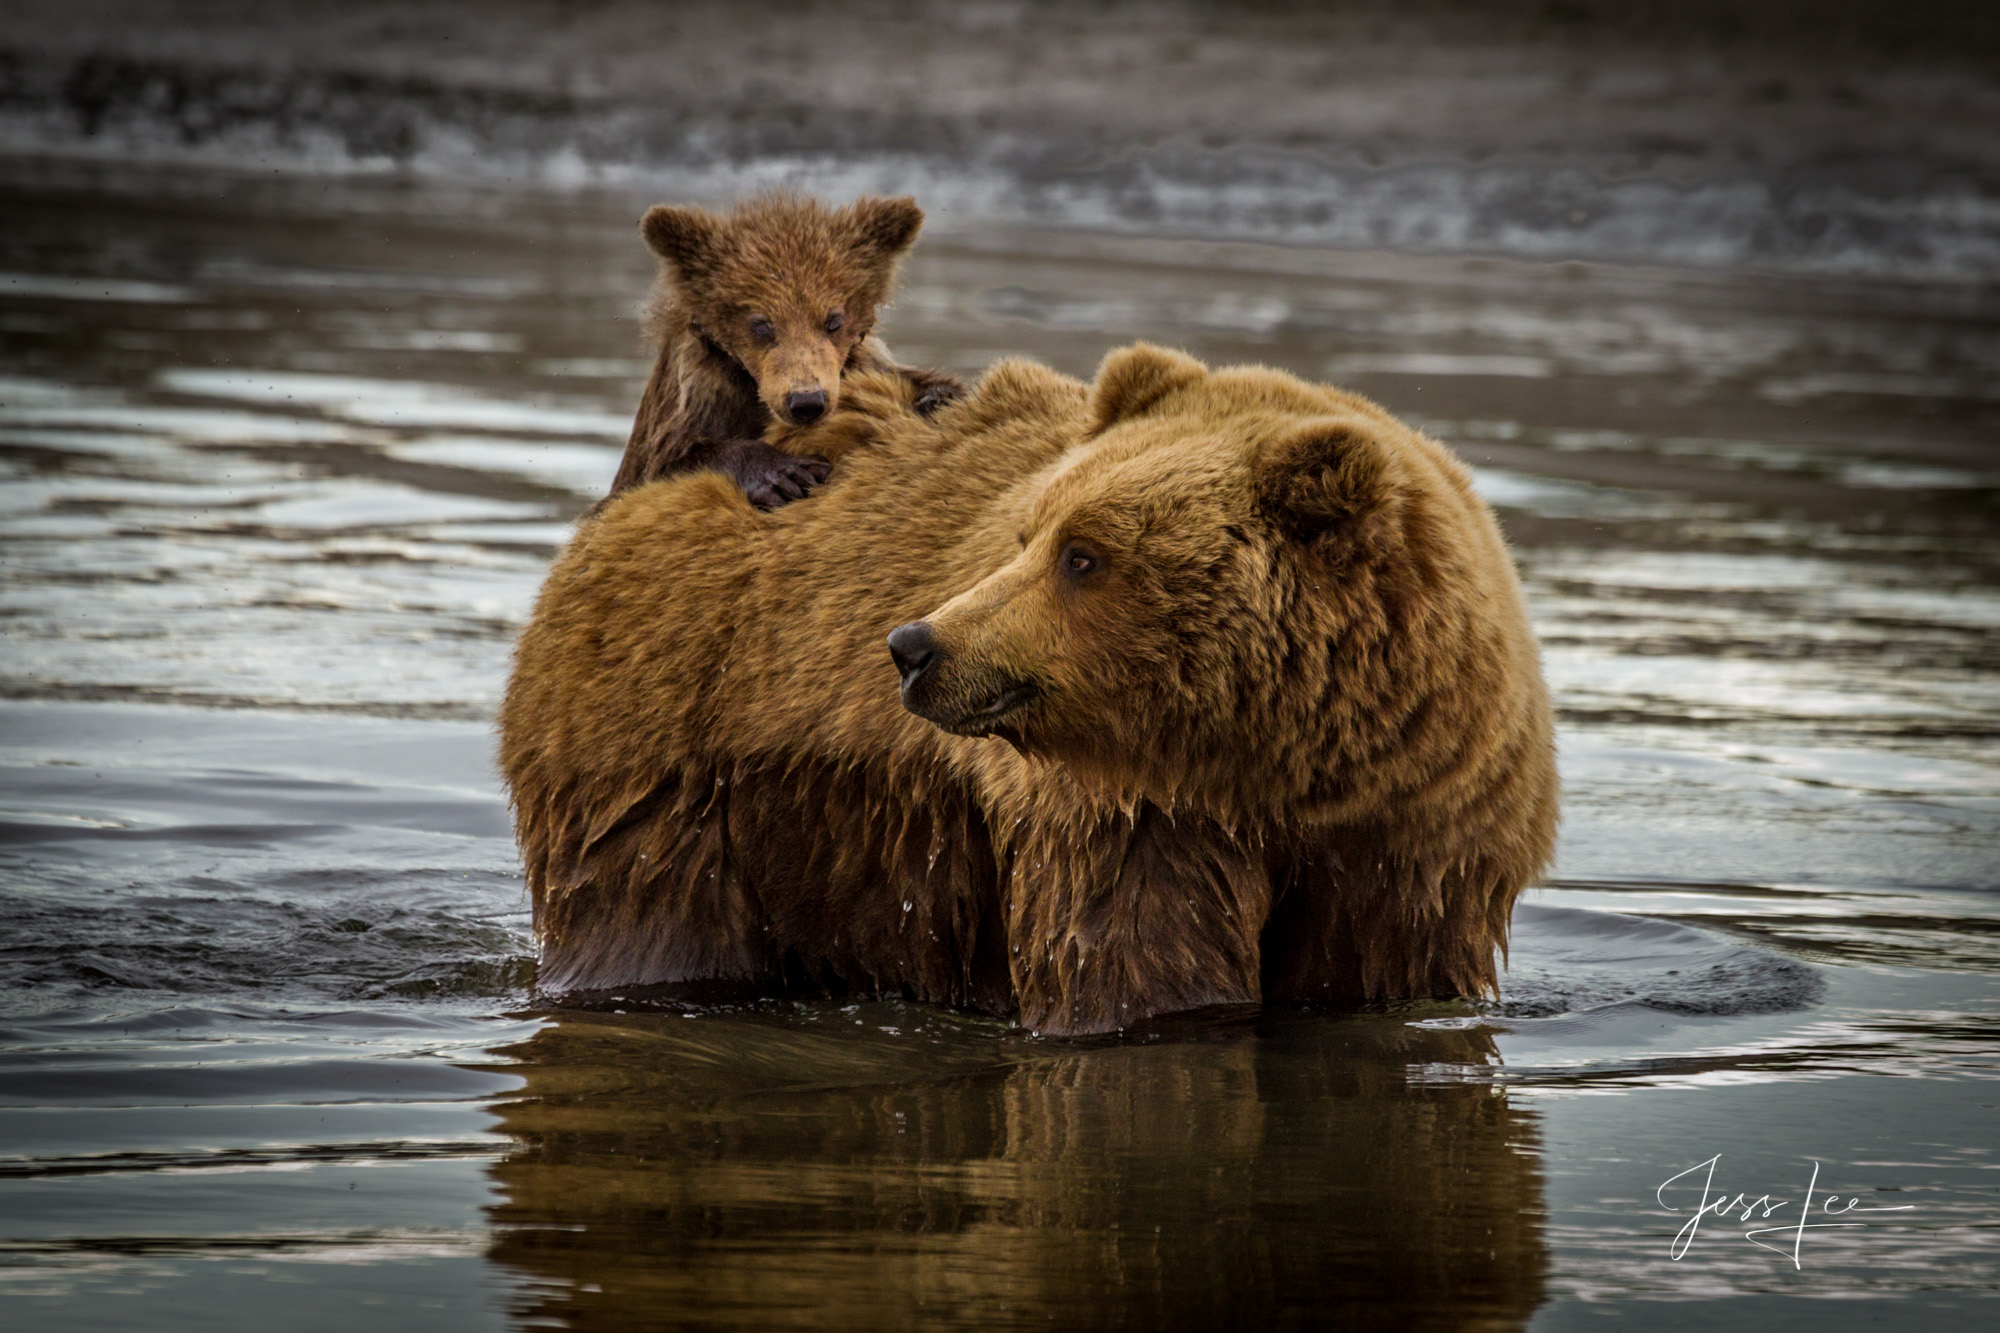 Grizzly cub hitching a ride,Alaska*, bear*, brown bear*, brown bears*, brown*, coastal*, cubs*, grizzlies*, Grizzly*, Jess Lee*, Cooke inlet, legendary photographer*, national park*, sow*, wildlife*, , photo